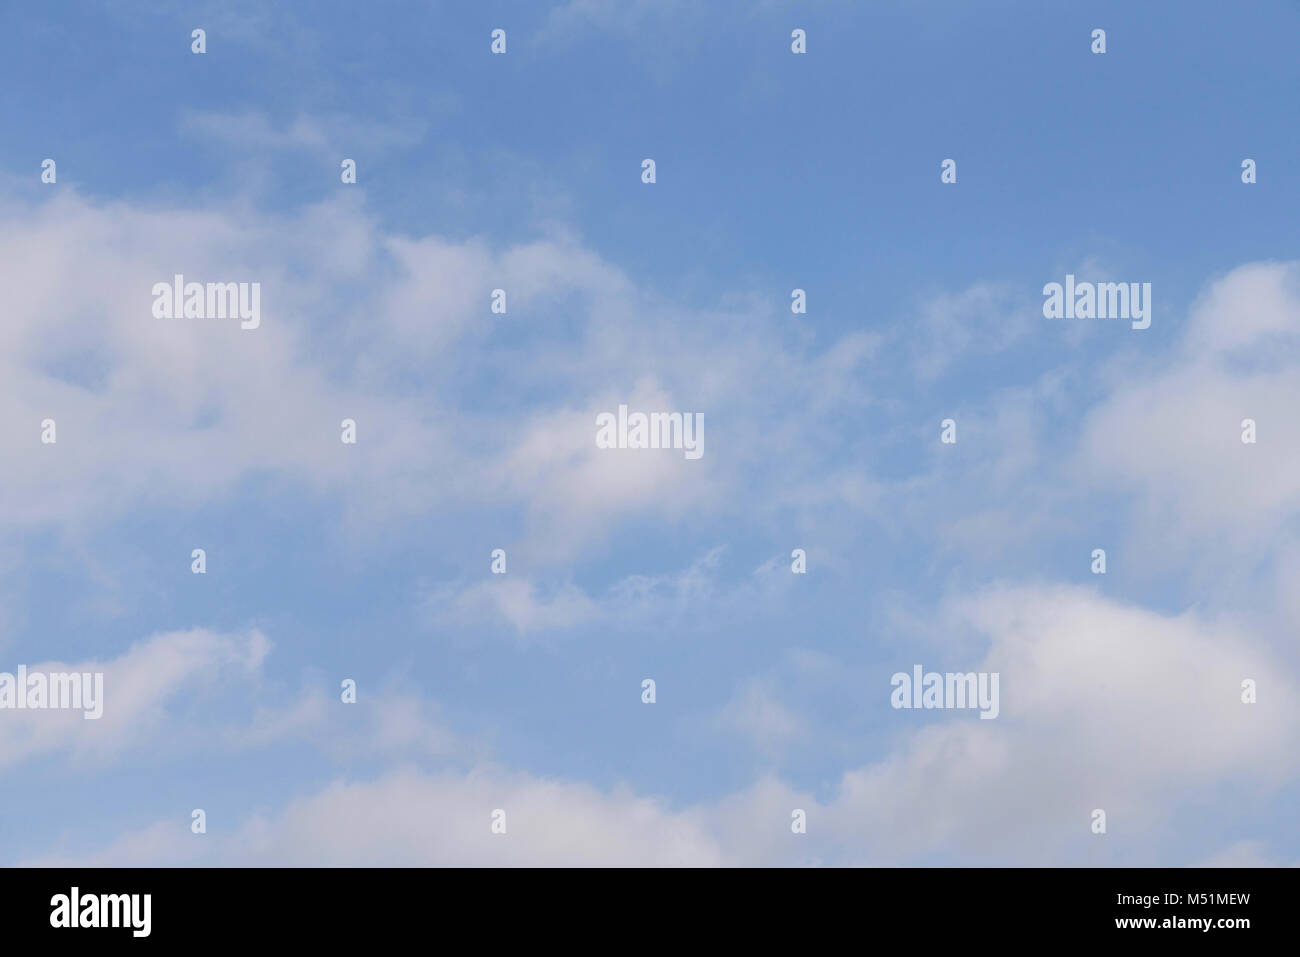 Blue sky with white fluffy clouds. - Stock Image